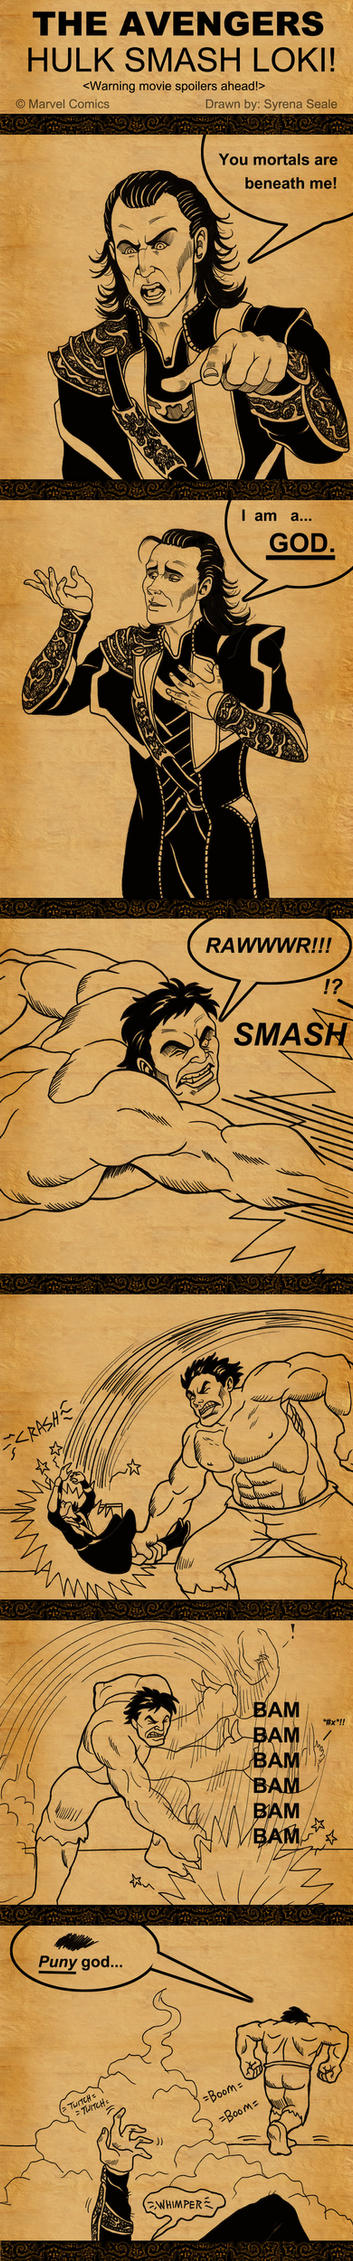 The Avengers - Hulk Smash Loki by SlayerSyrena